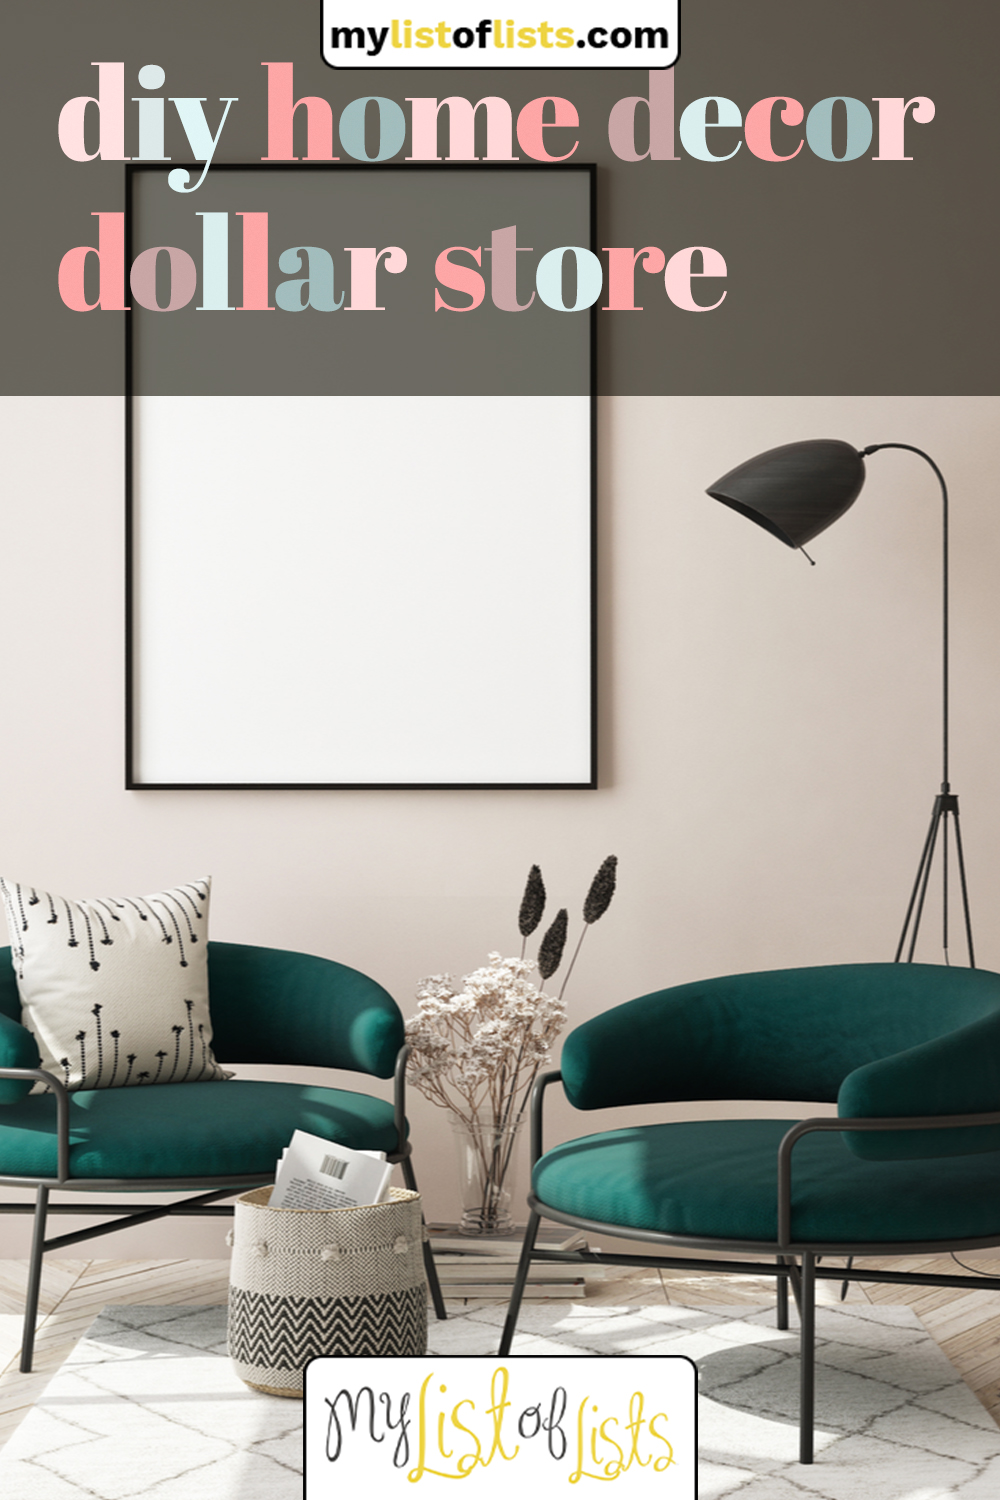 Make your home look absolutely amazing while spending no money at all with these awesome DIY home decor ideas from the Dollar Store. Whether you want wall art or something else, we can show you how. #diy #cheap #mylistoflistsblog